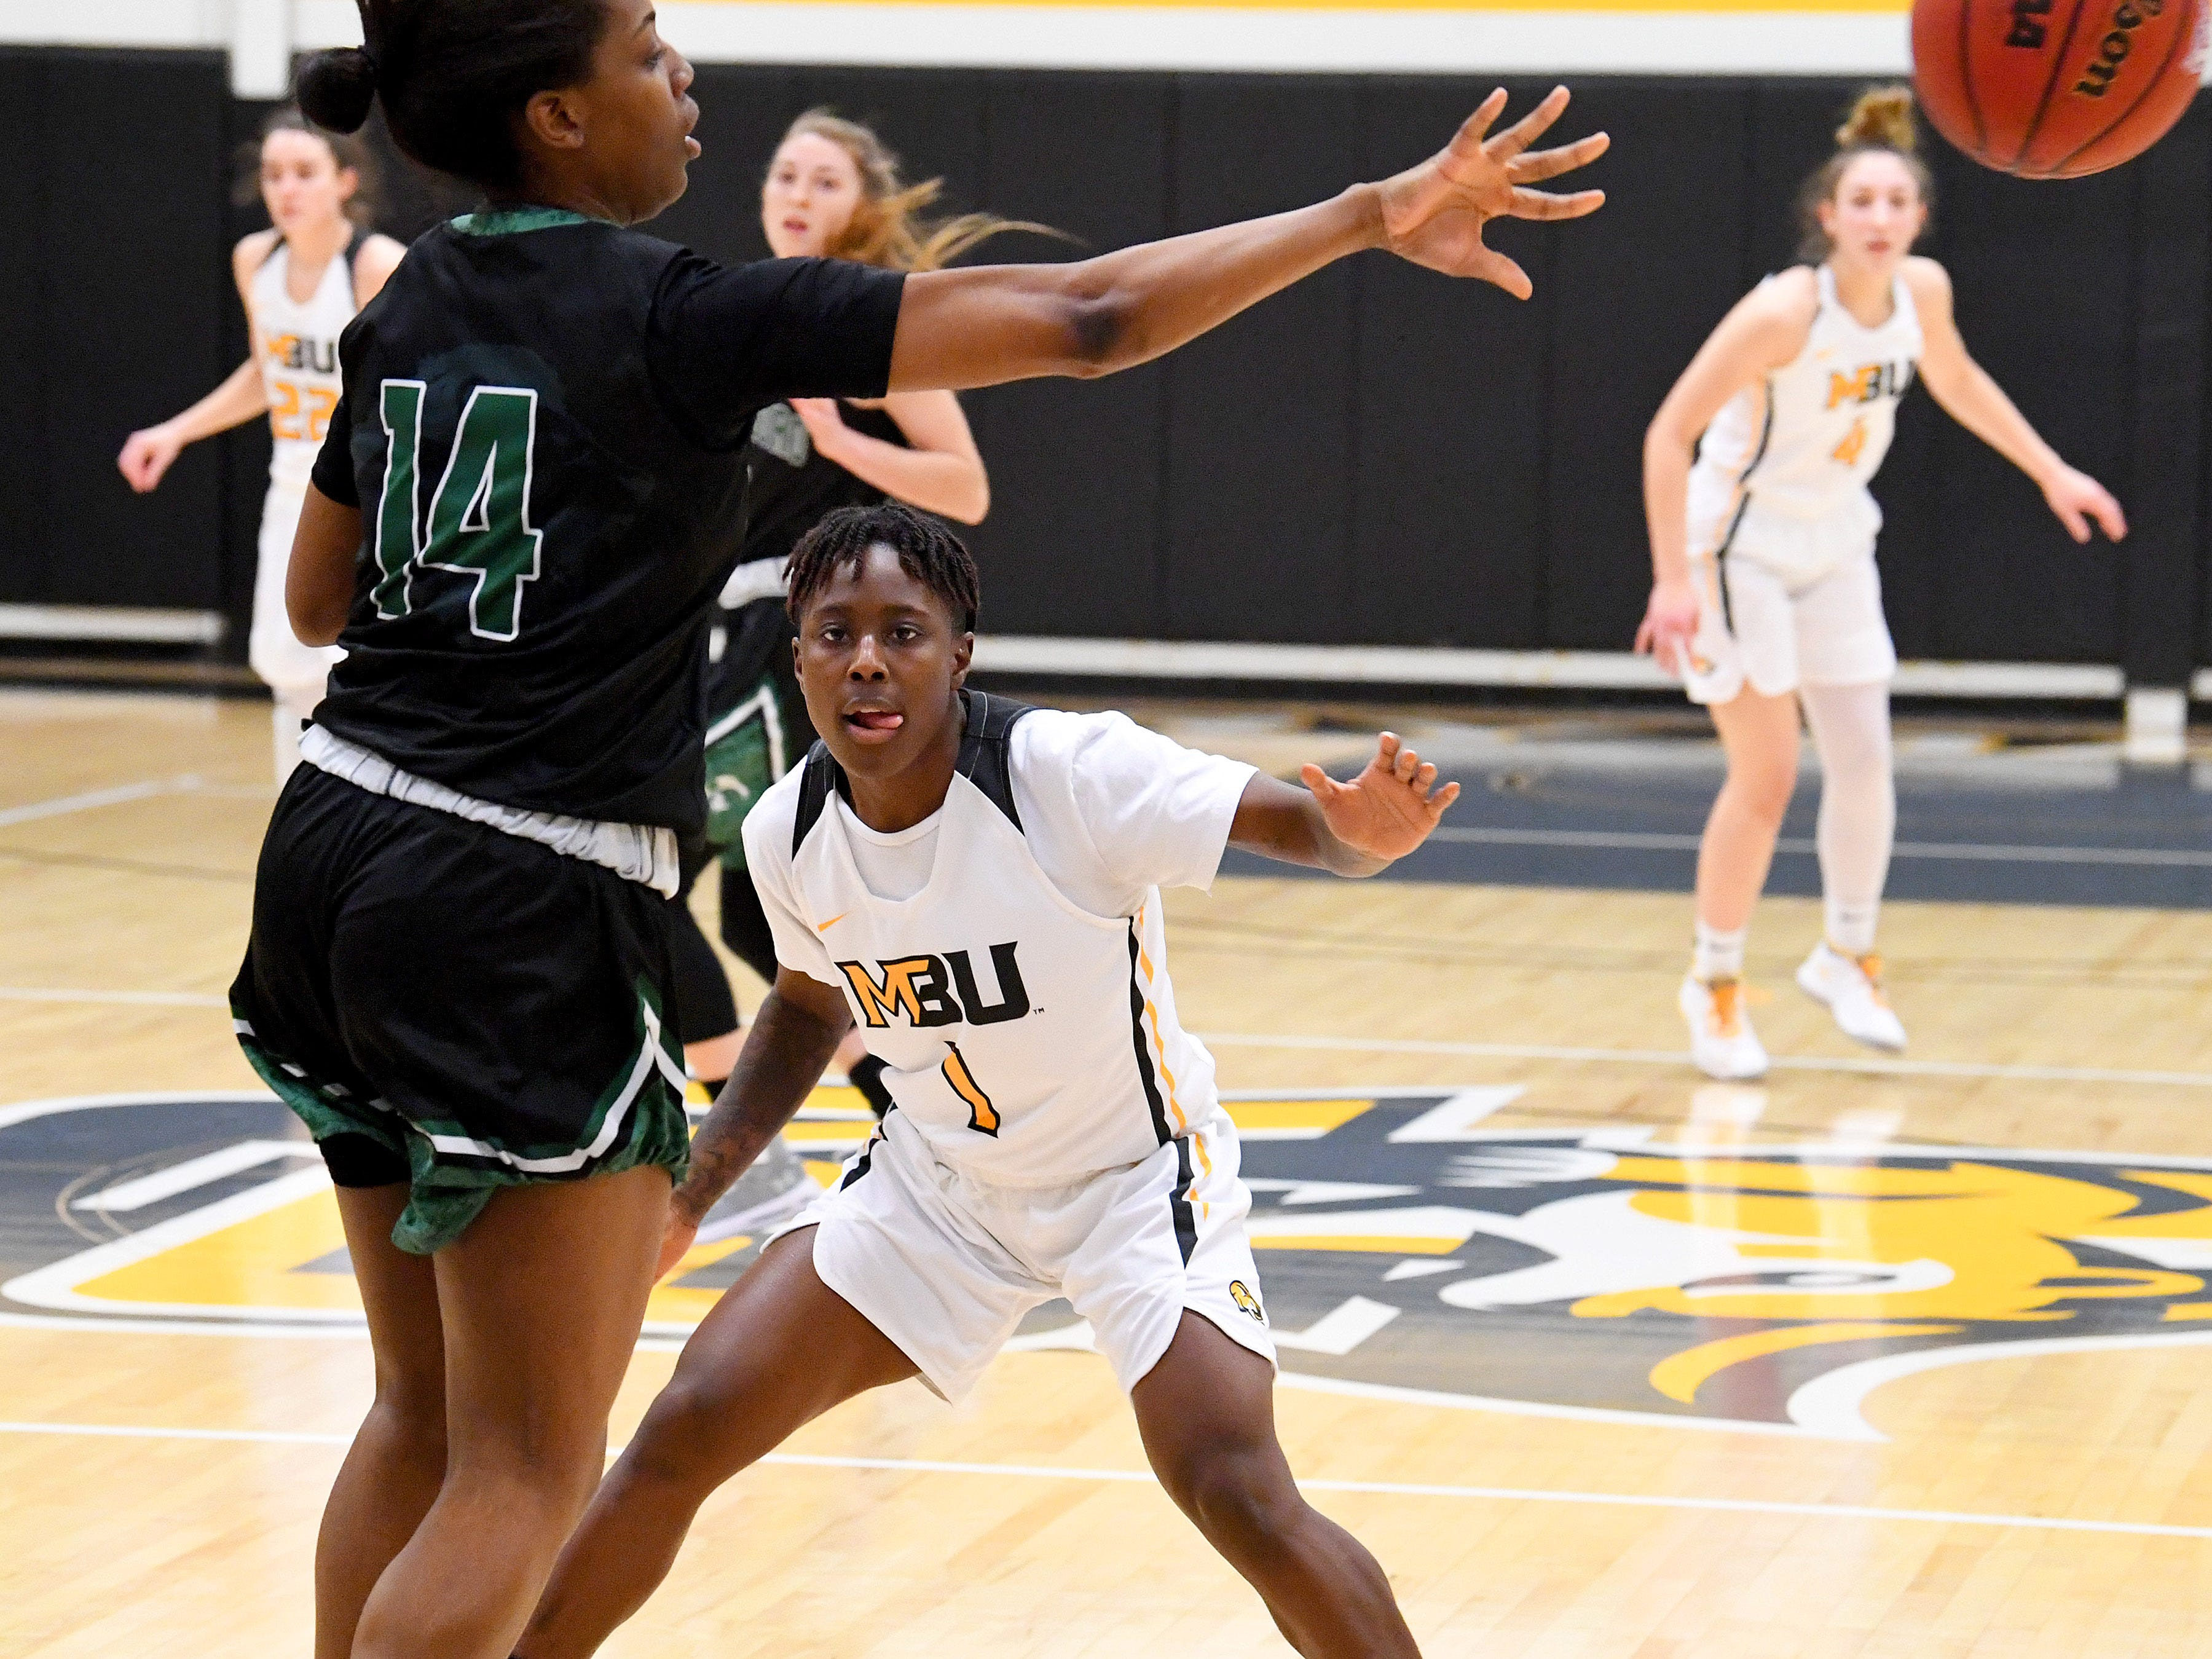 Mary Baldwin's Yaya Nedd guards against Greensboro's Sabria Joseph who passes the ball during a USA South conference game played in Staunton on Jan. 9, 2019.